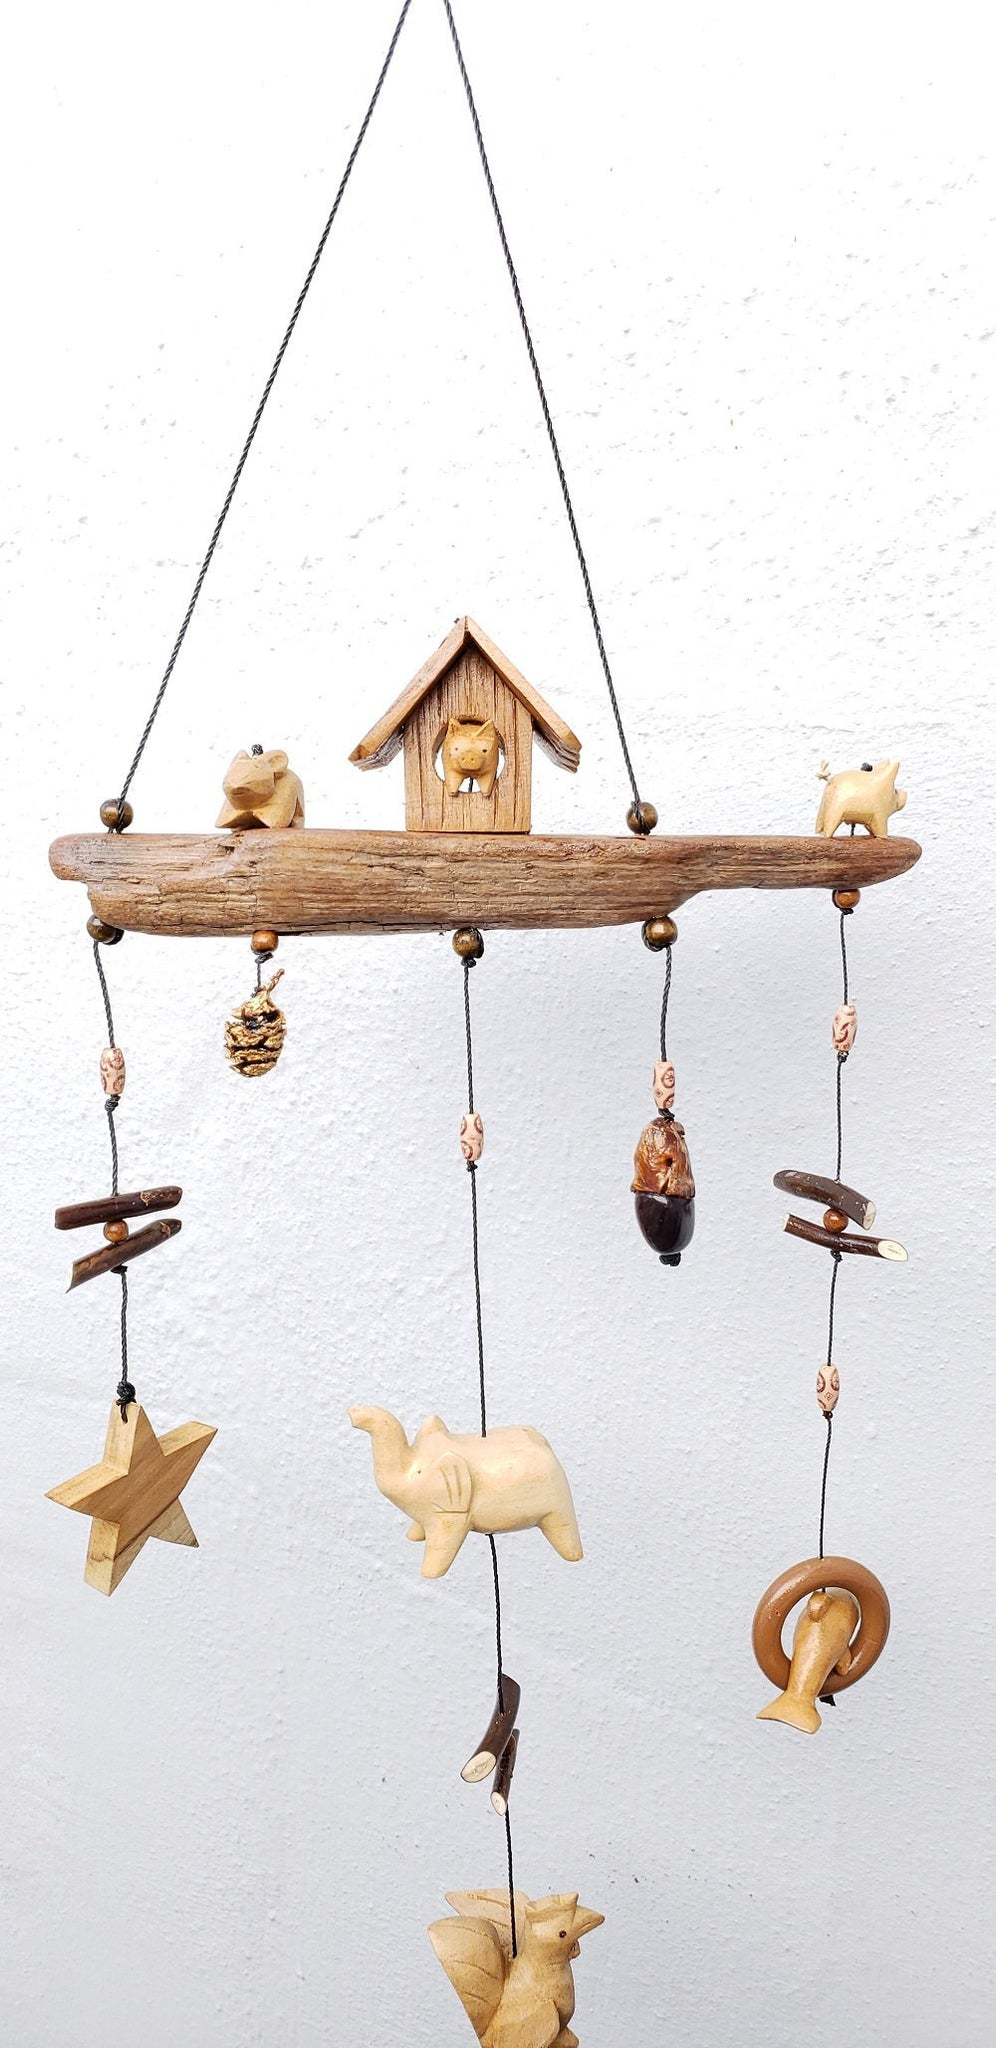 Elephant, ,Pig in the bird house ,Chicken ,dolphin,rabbit,outdoor or ondoor mobile weatherproof